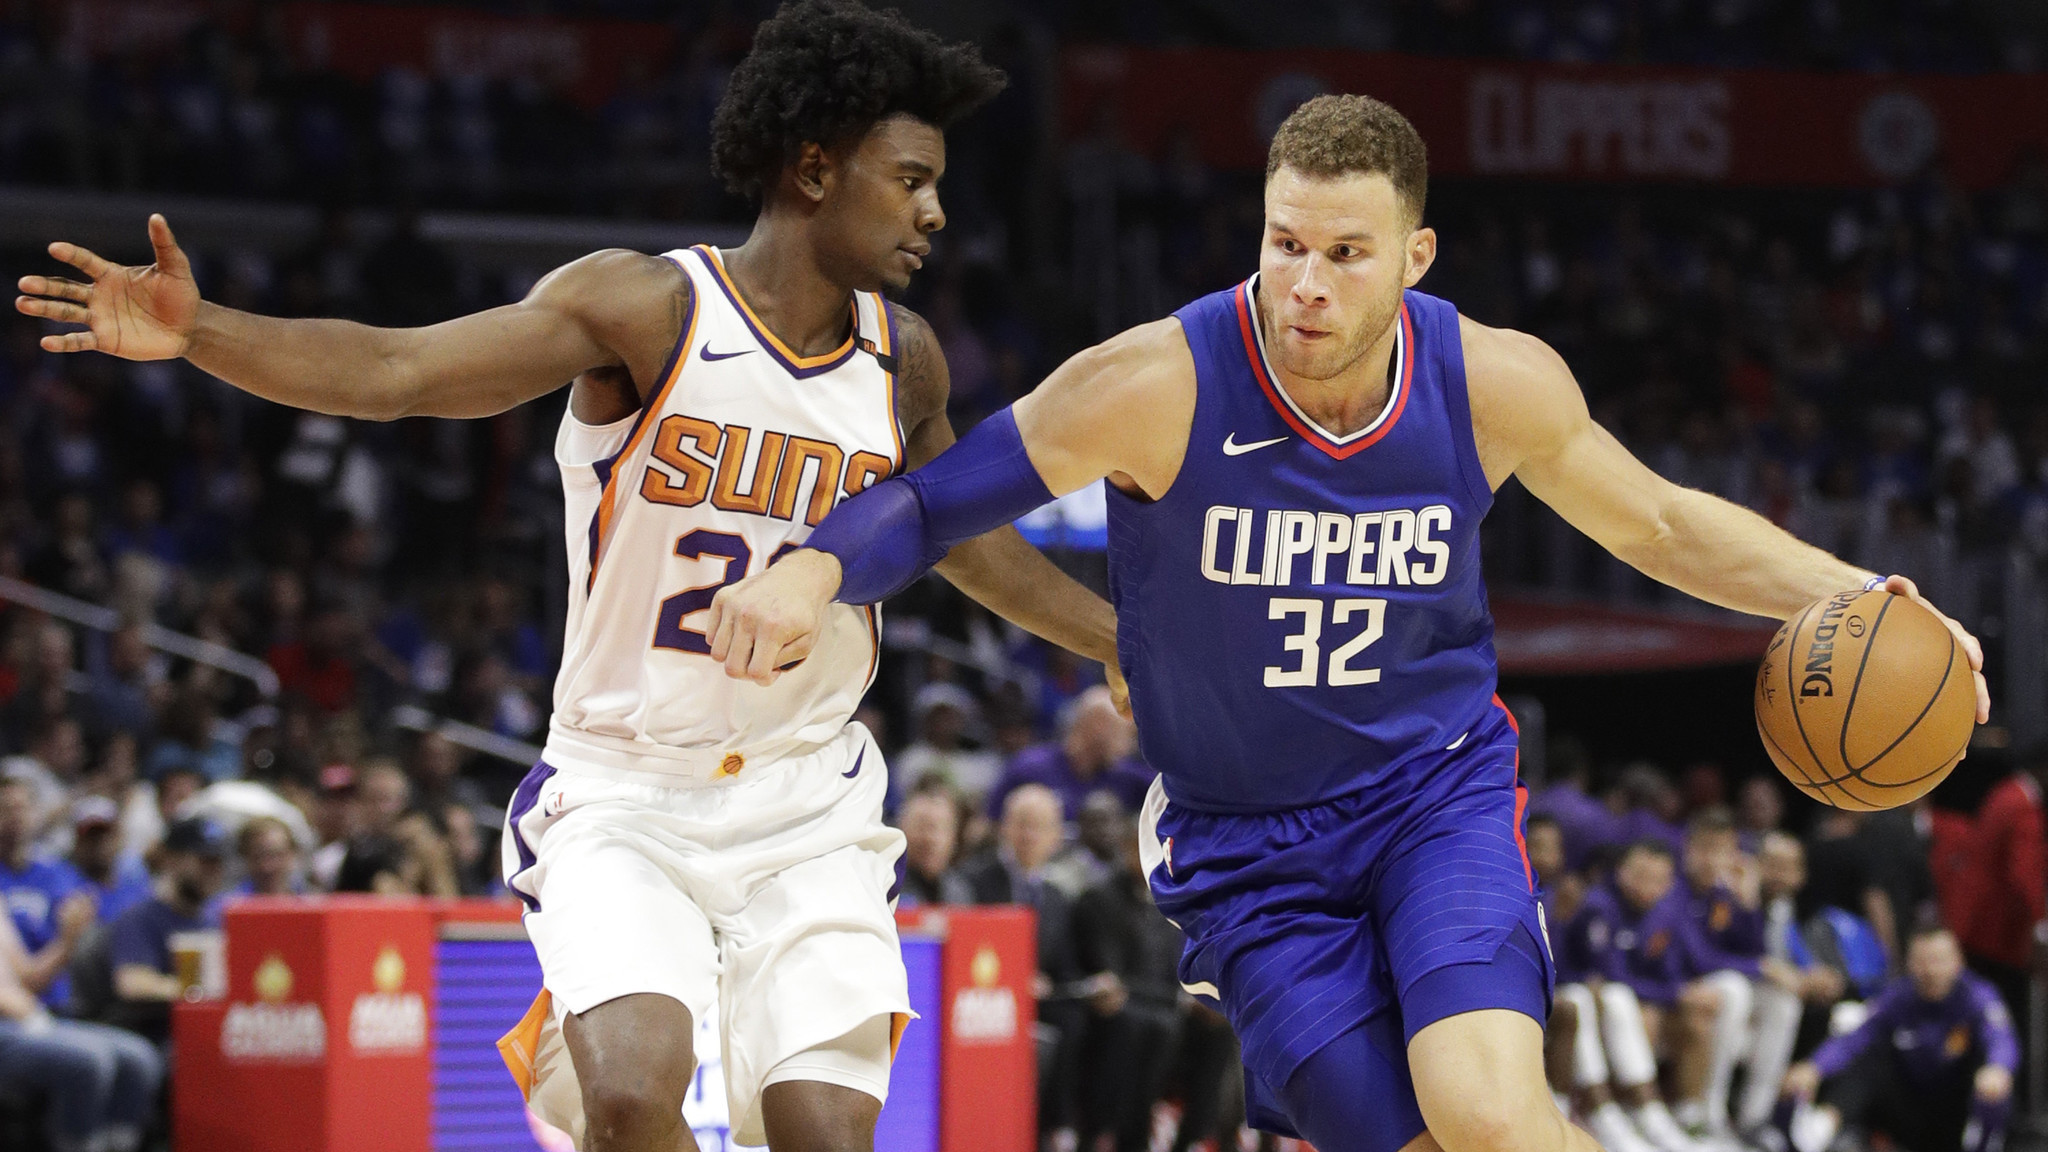 Five takeaways from the Clippers' victory over the Phoenix Suns